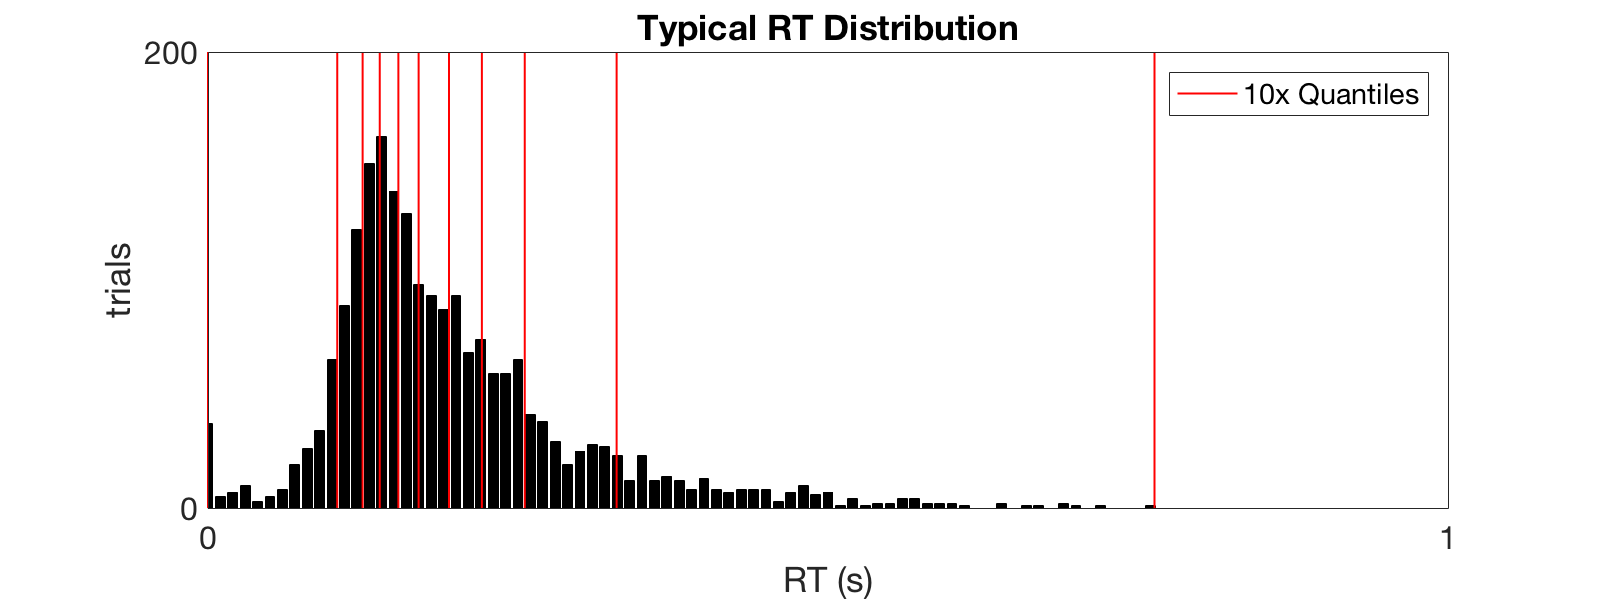 typicalRTDistribution.png